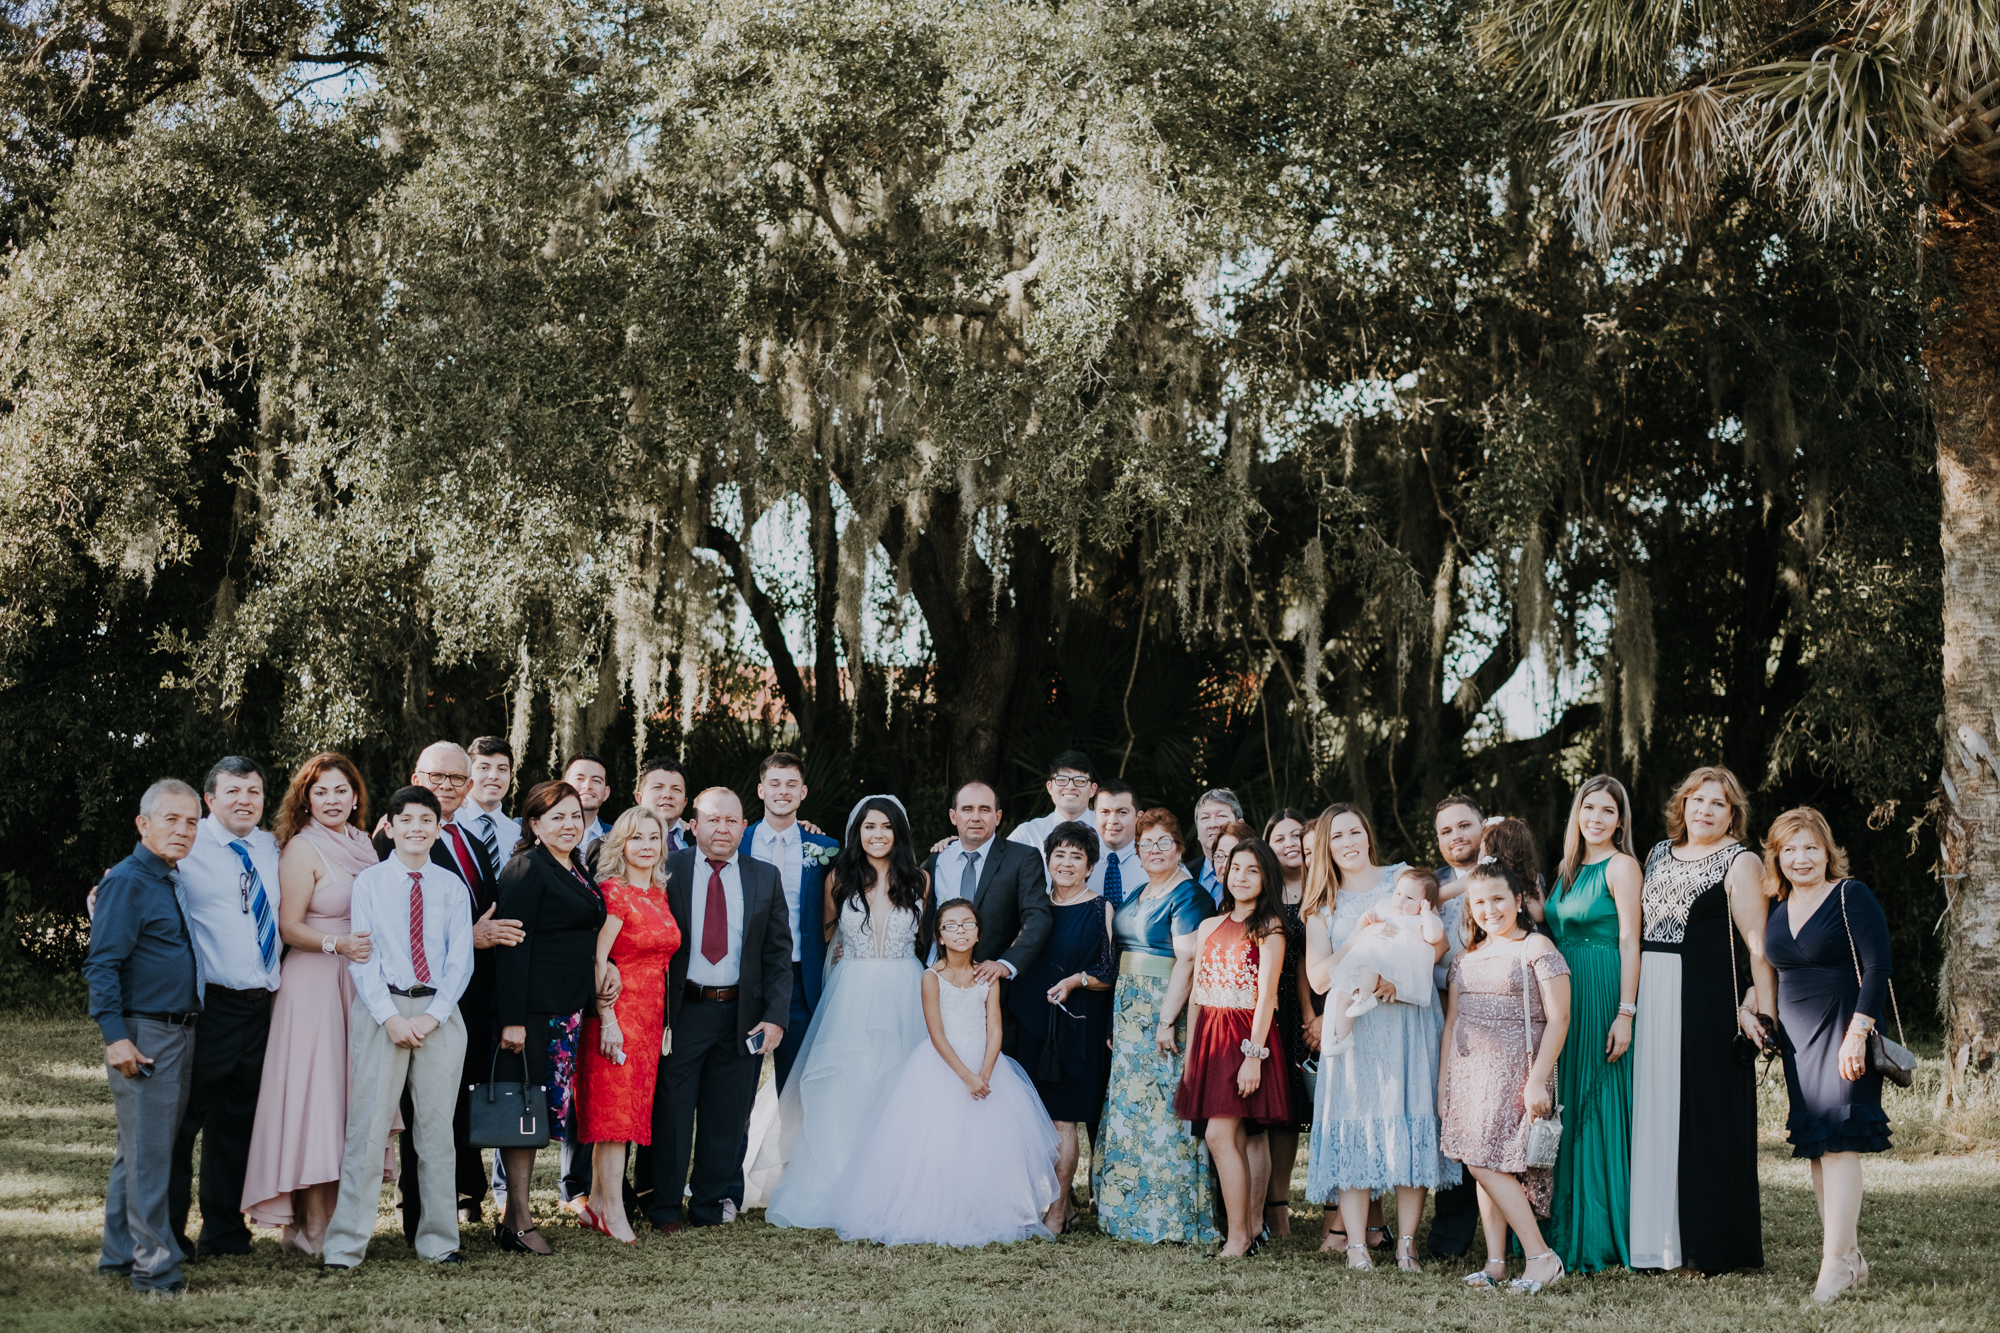 large family portraits | wedding family portraits | wedding group portraits | outdoor Florida wedding